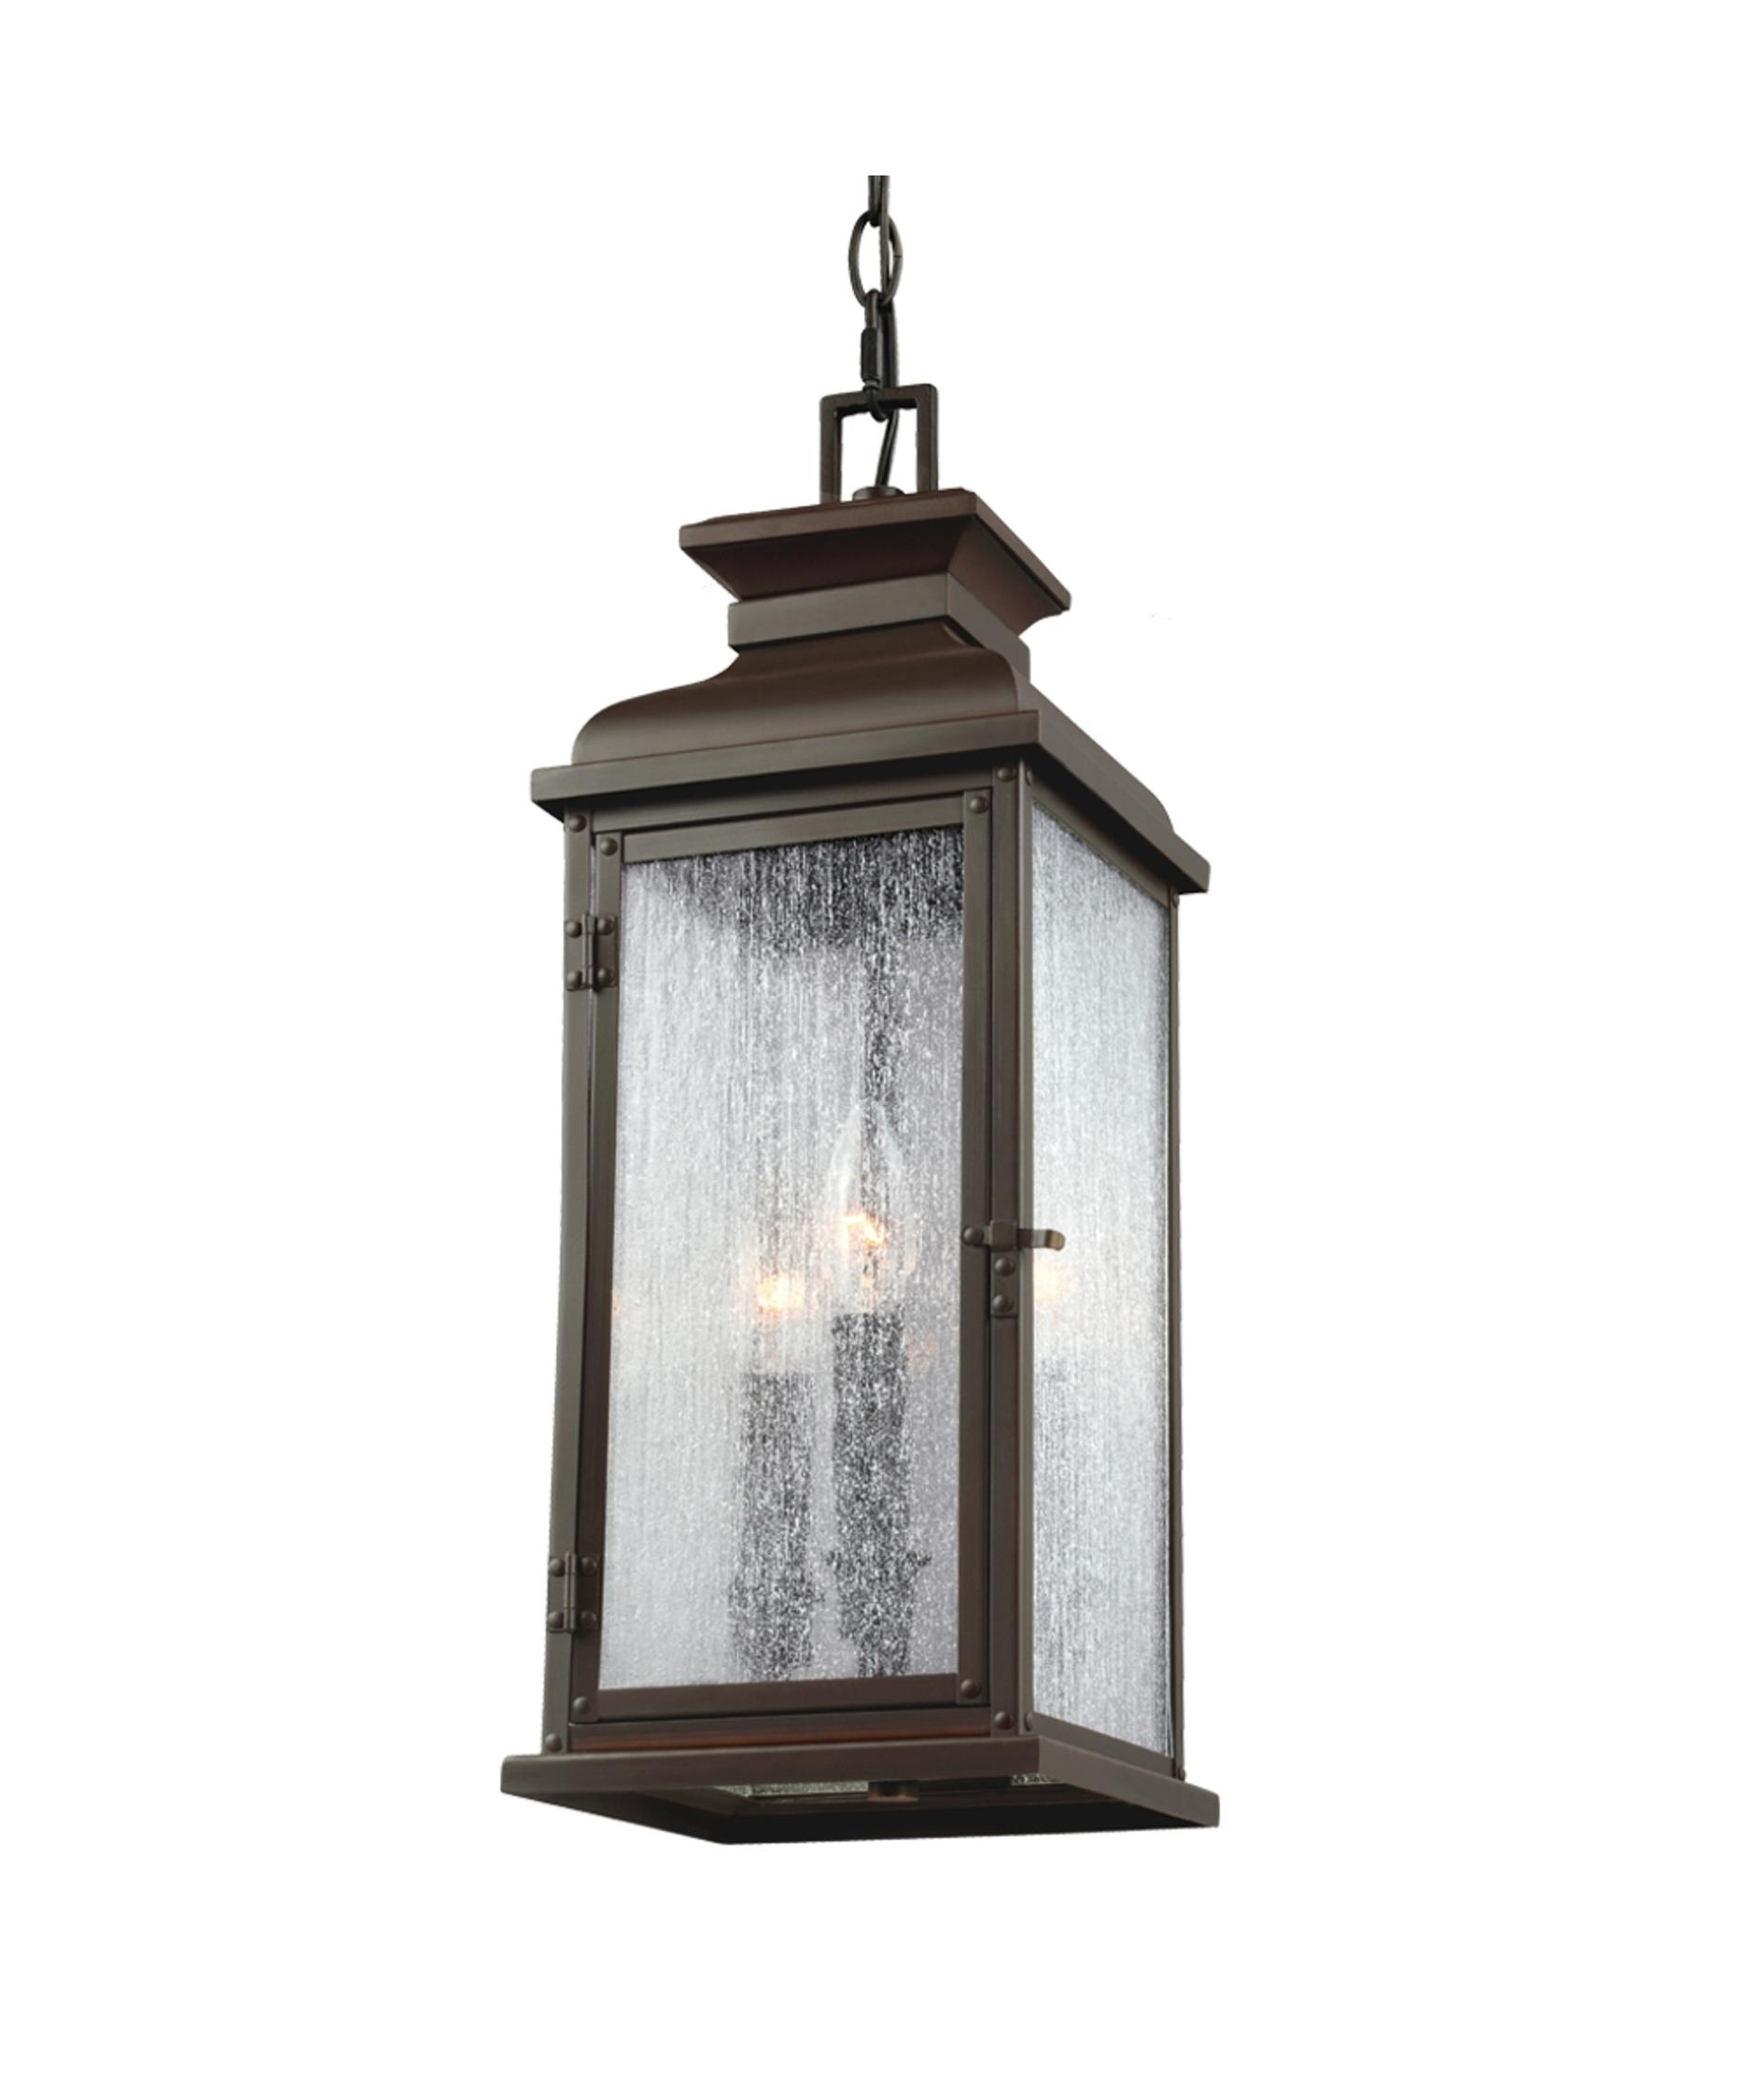 Outdoor Hanging Patio Lanterns Regarding Most Current Murray Feiss Ol11109 Pediment 7 Inch Wide 2 Light Outdoor Hanging (View 9 of 20)